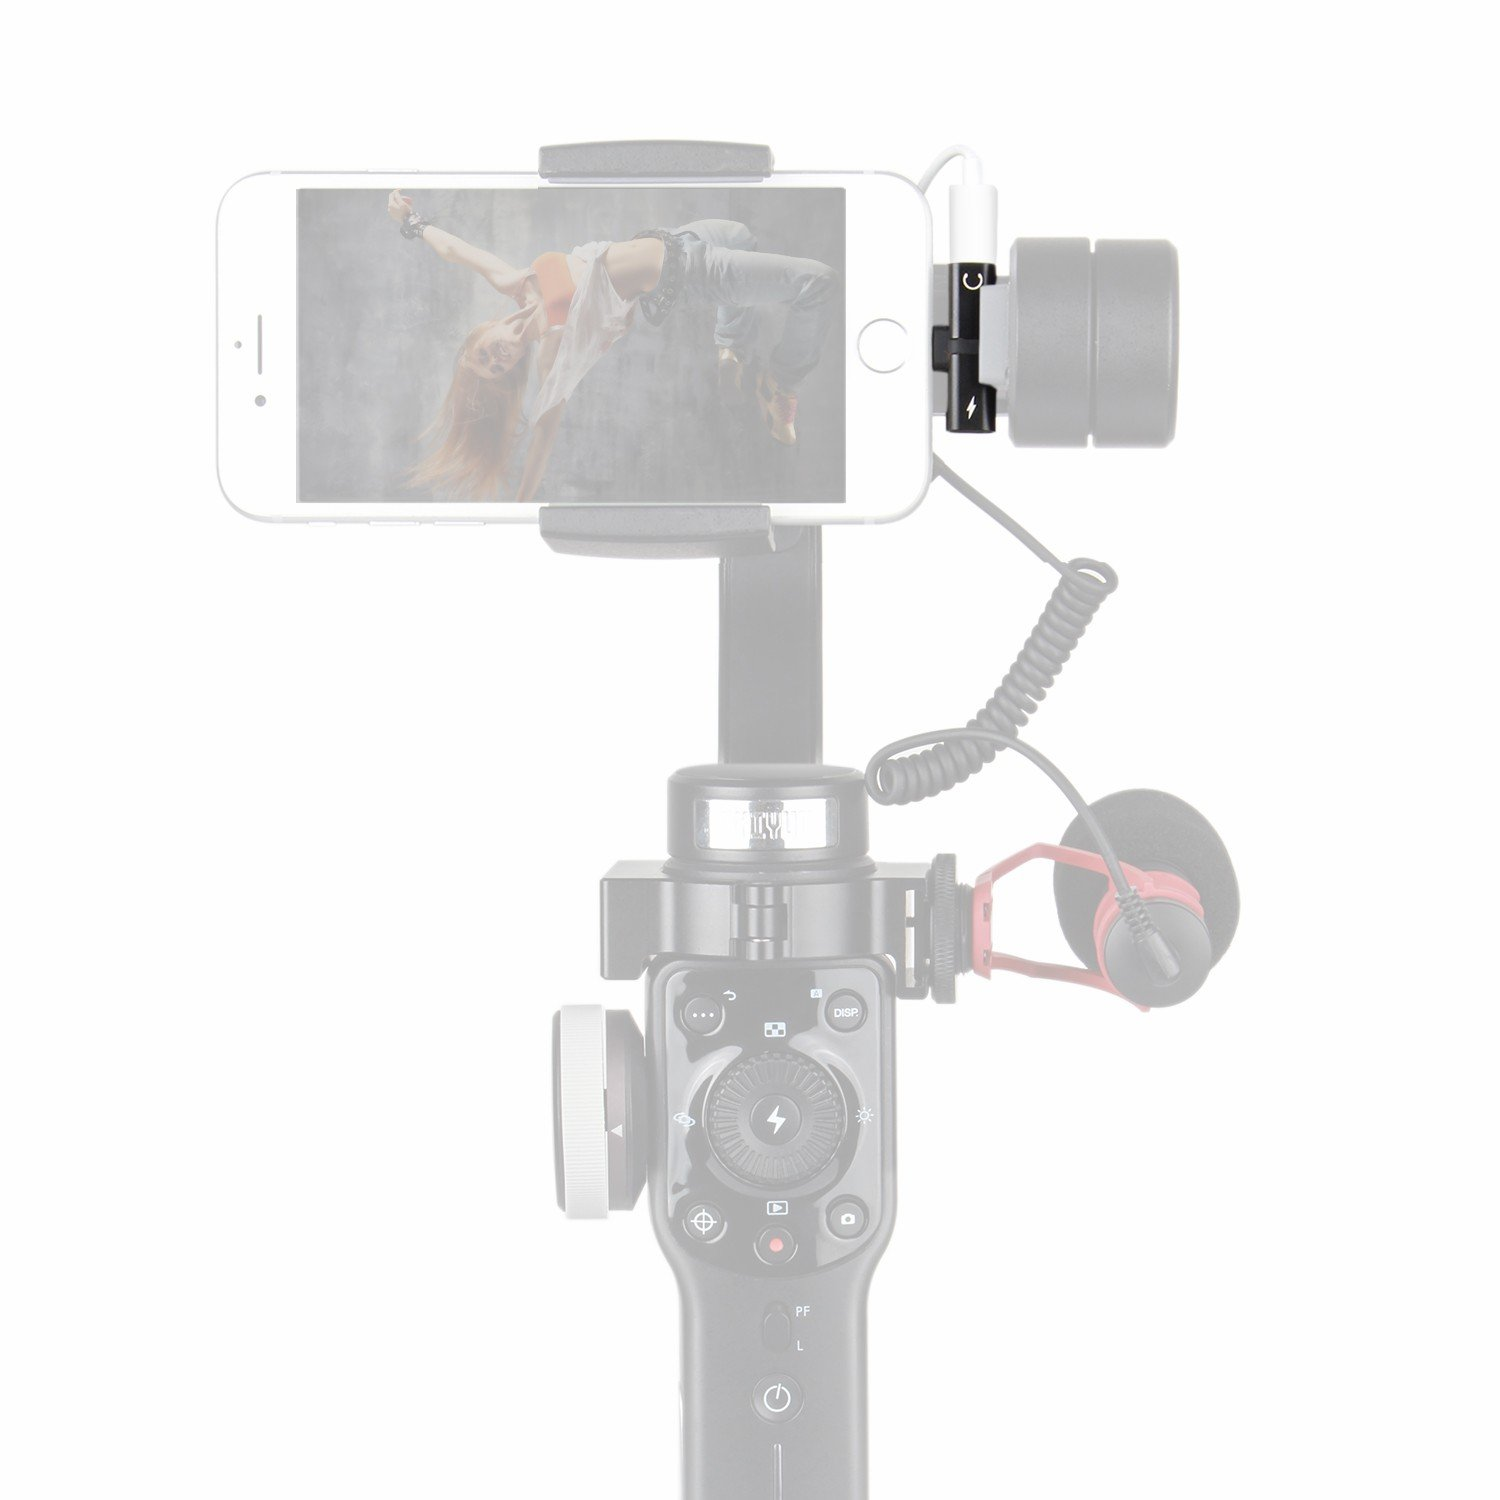 HolaFoto 2in1 Lightning Adapter, Charge & Lightning Headphone Audio Adapter Attach Microphone to Gimbal Such As Zhiyun Smooth Q/4 3 DJI Osmo Mobile 2 Feiyu SPG for iPhone X 8/8 Plus 7/7 Plus